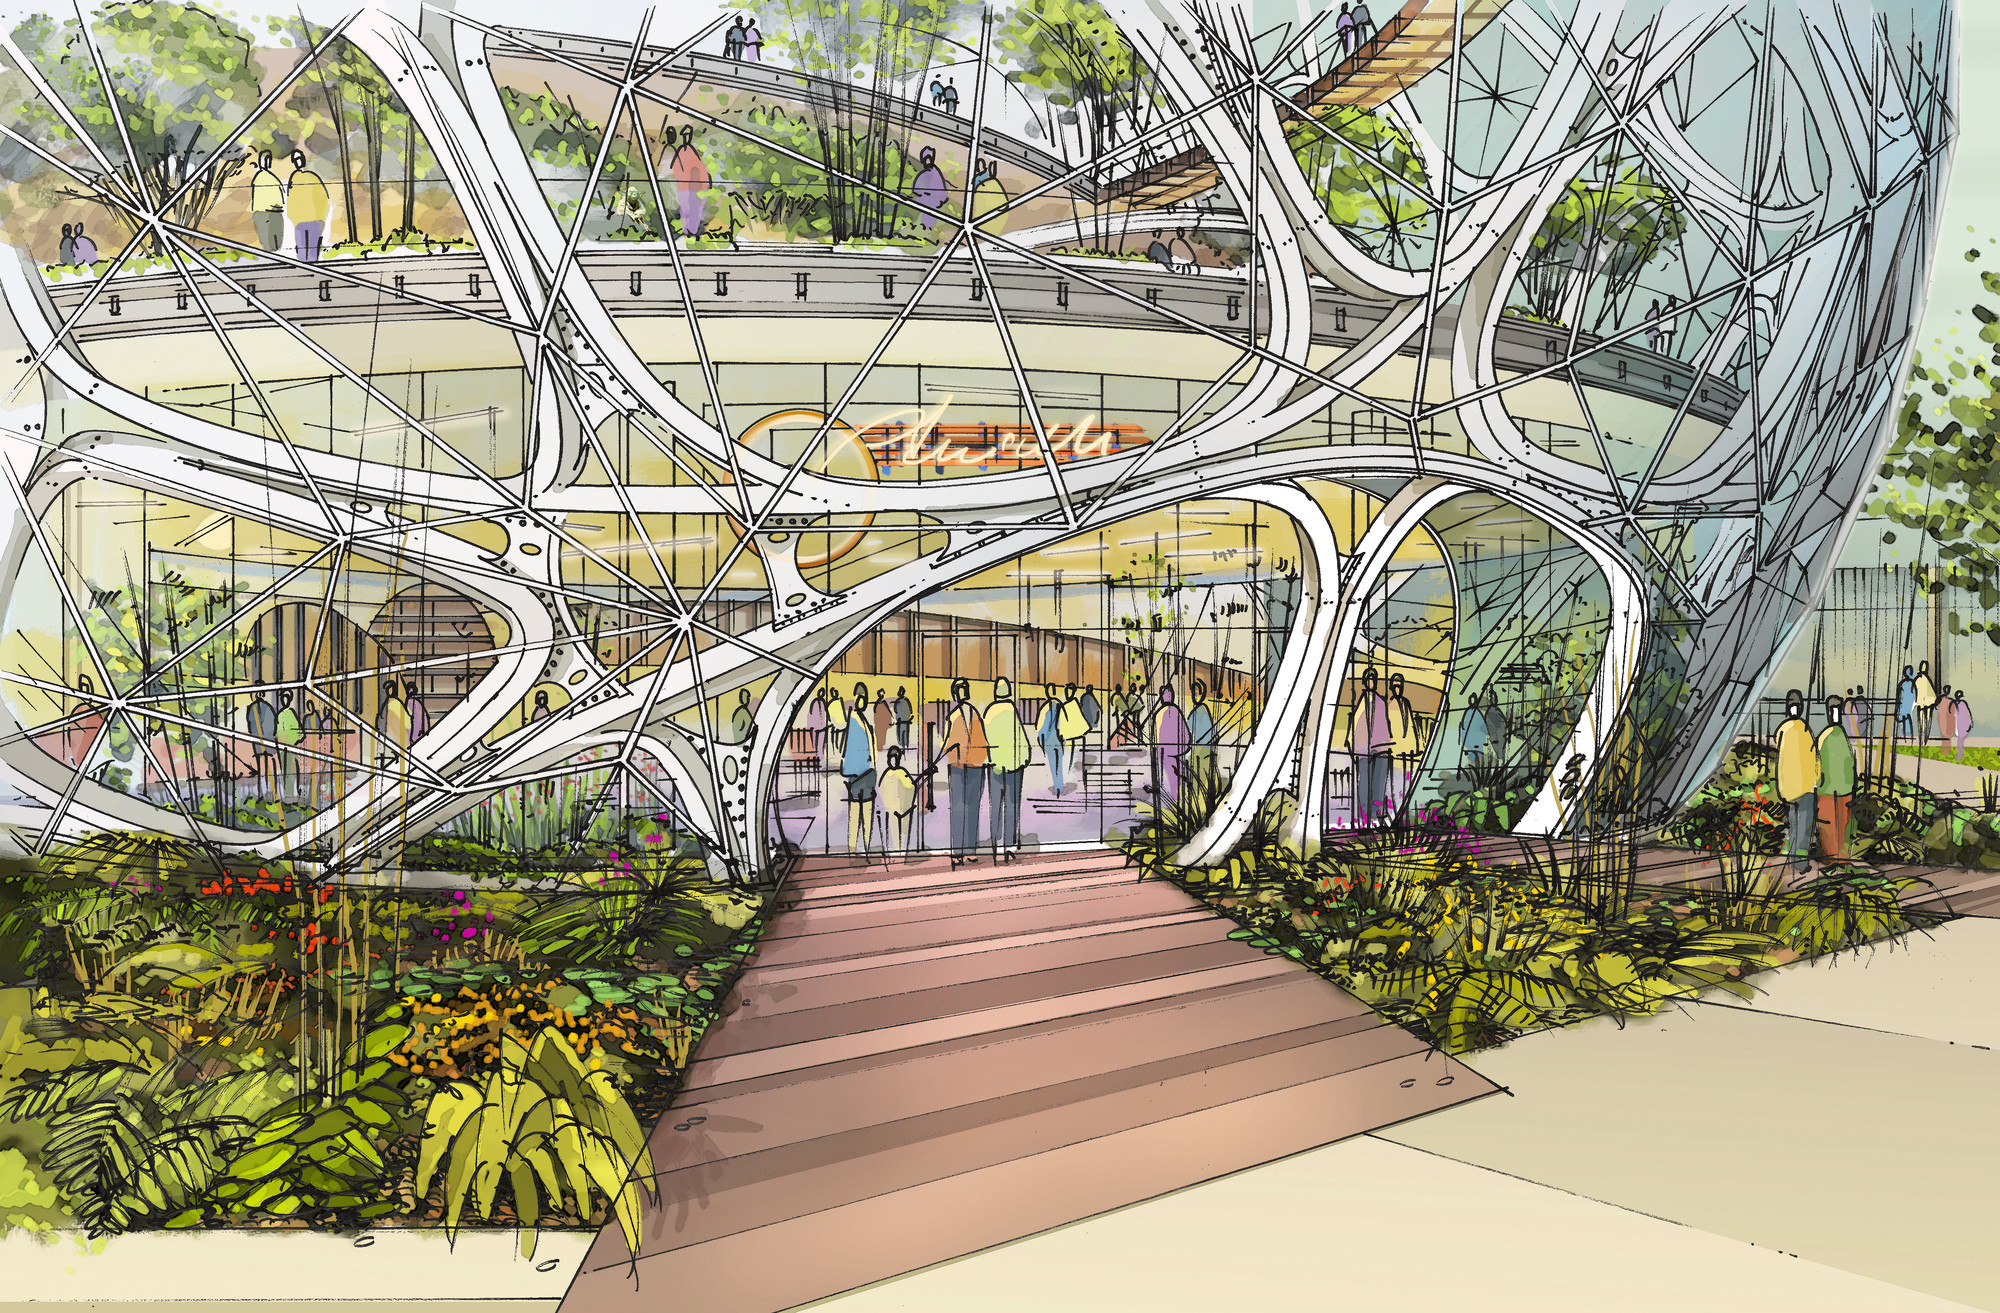 Nbbj S Biodome For Amazon Approved By Seattle Design Board